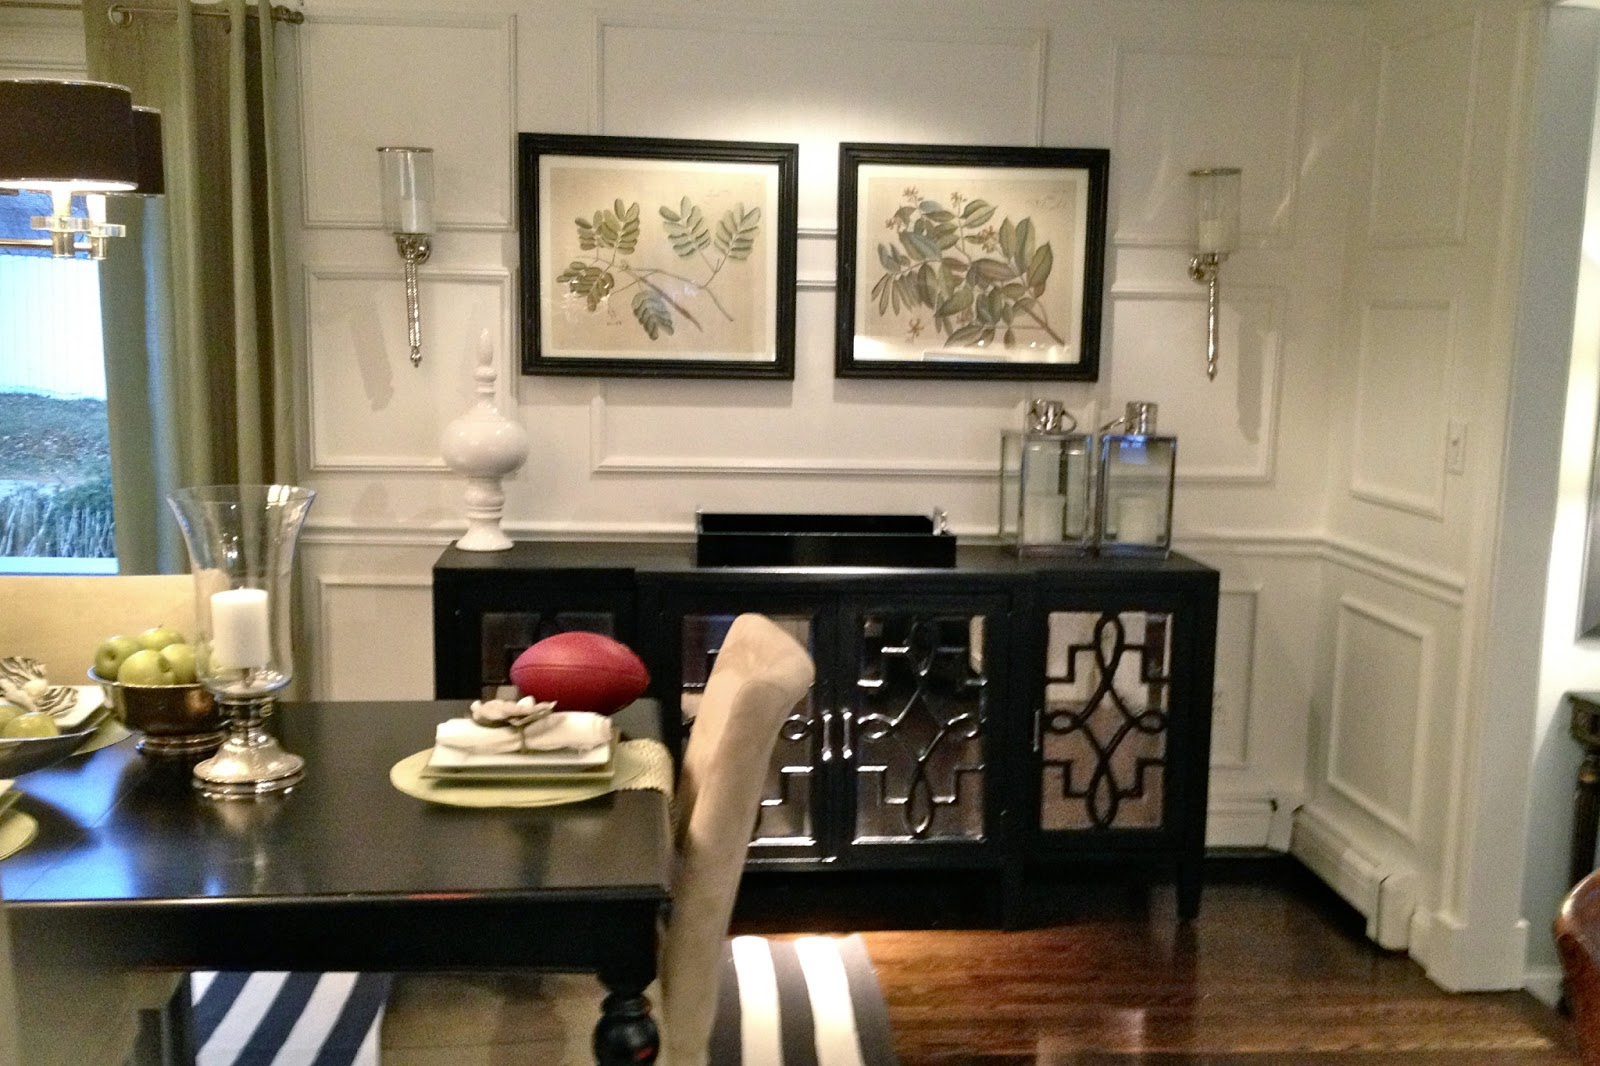 Kitchen Credenza Makeover. Tuesday, January 22, 2013